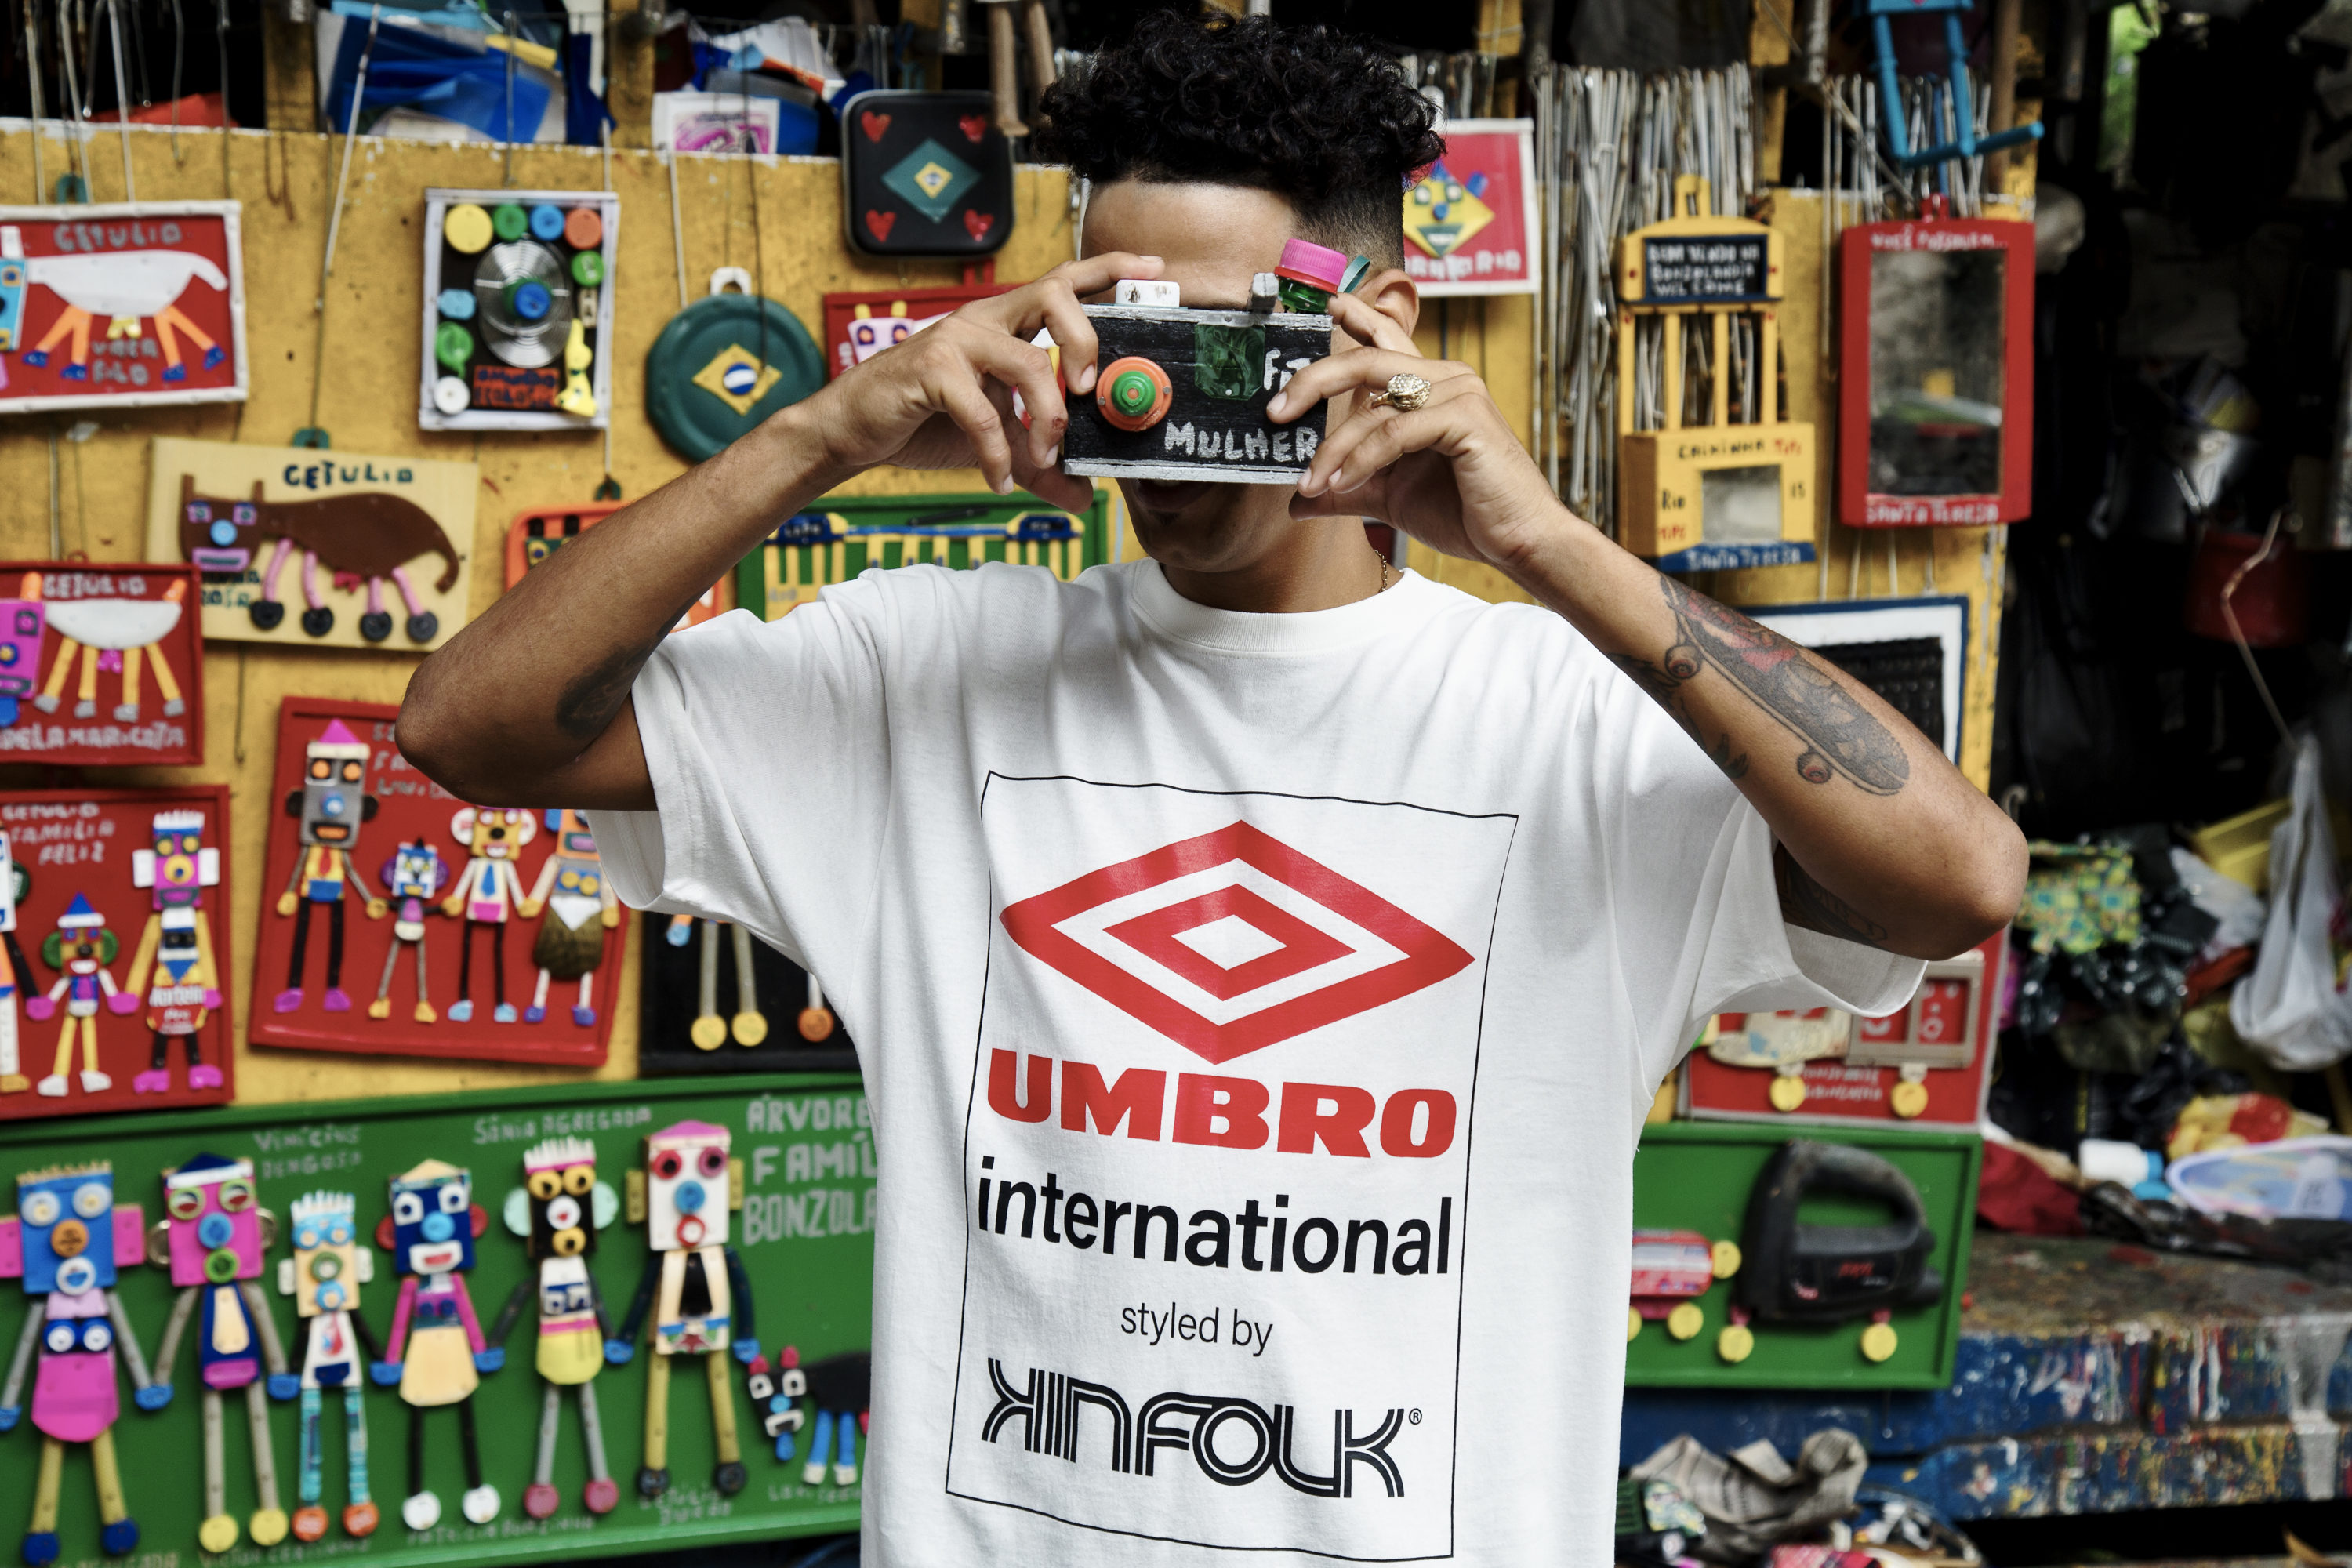 umbro new collection